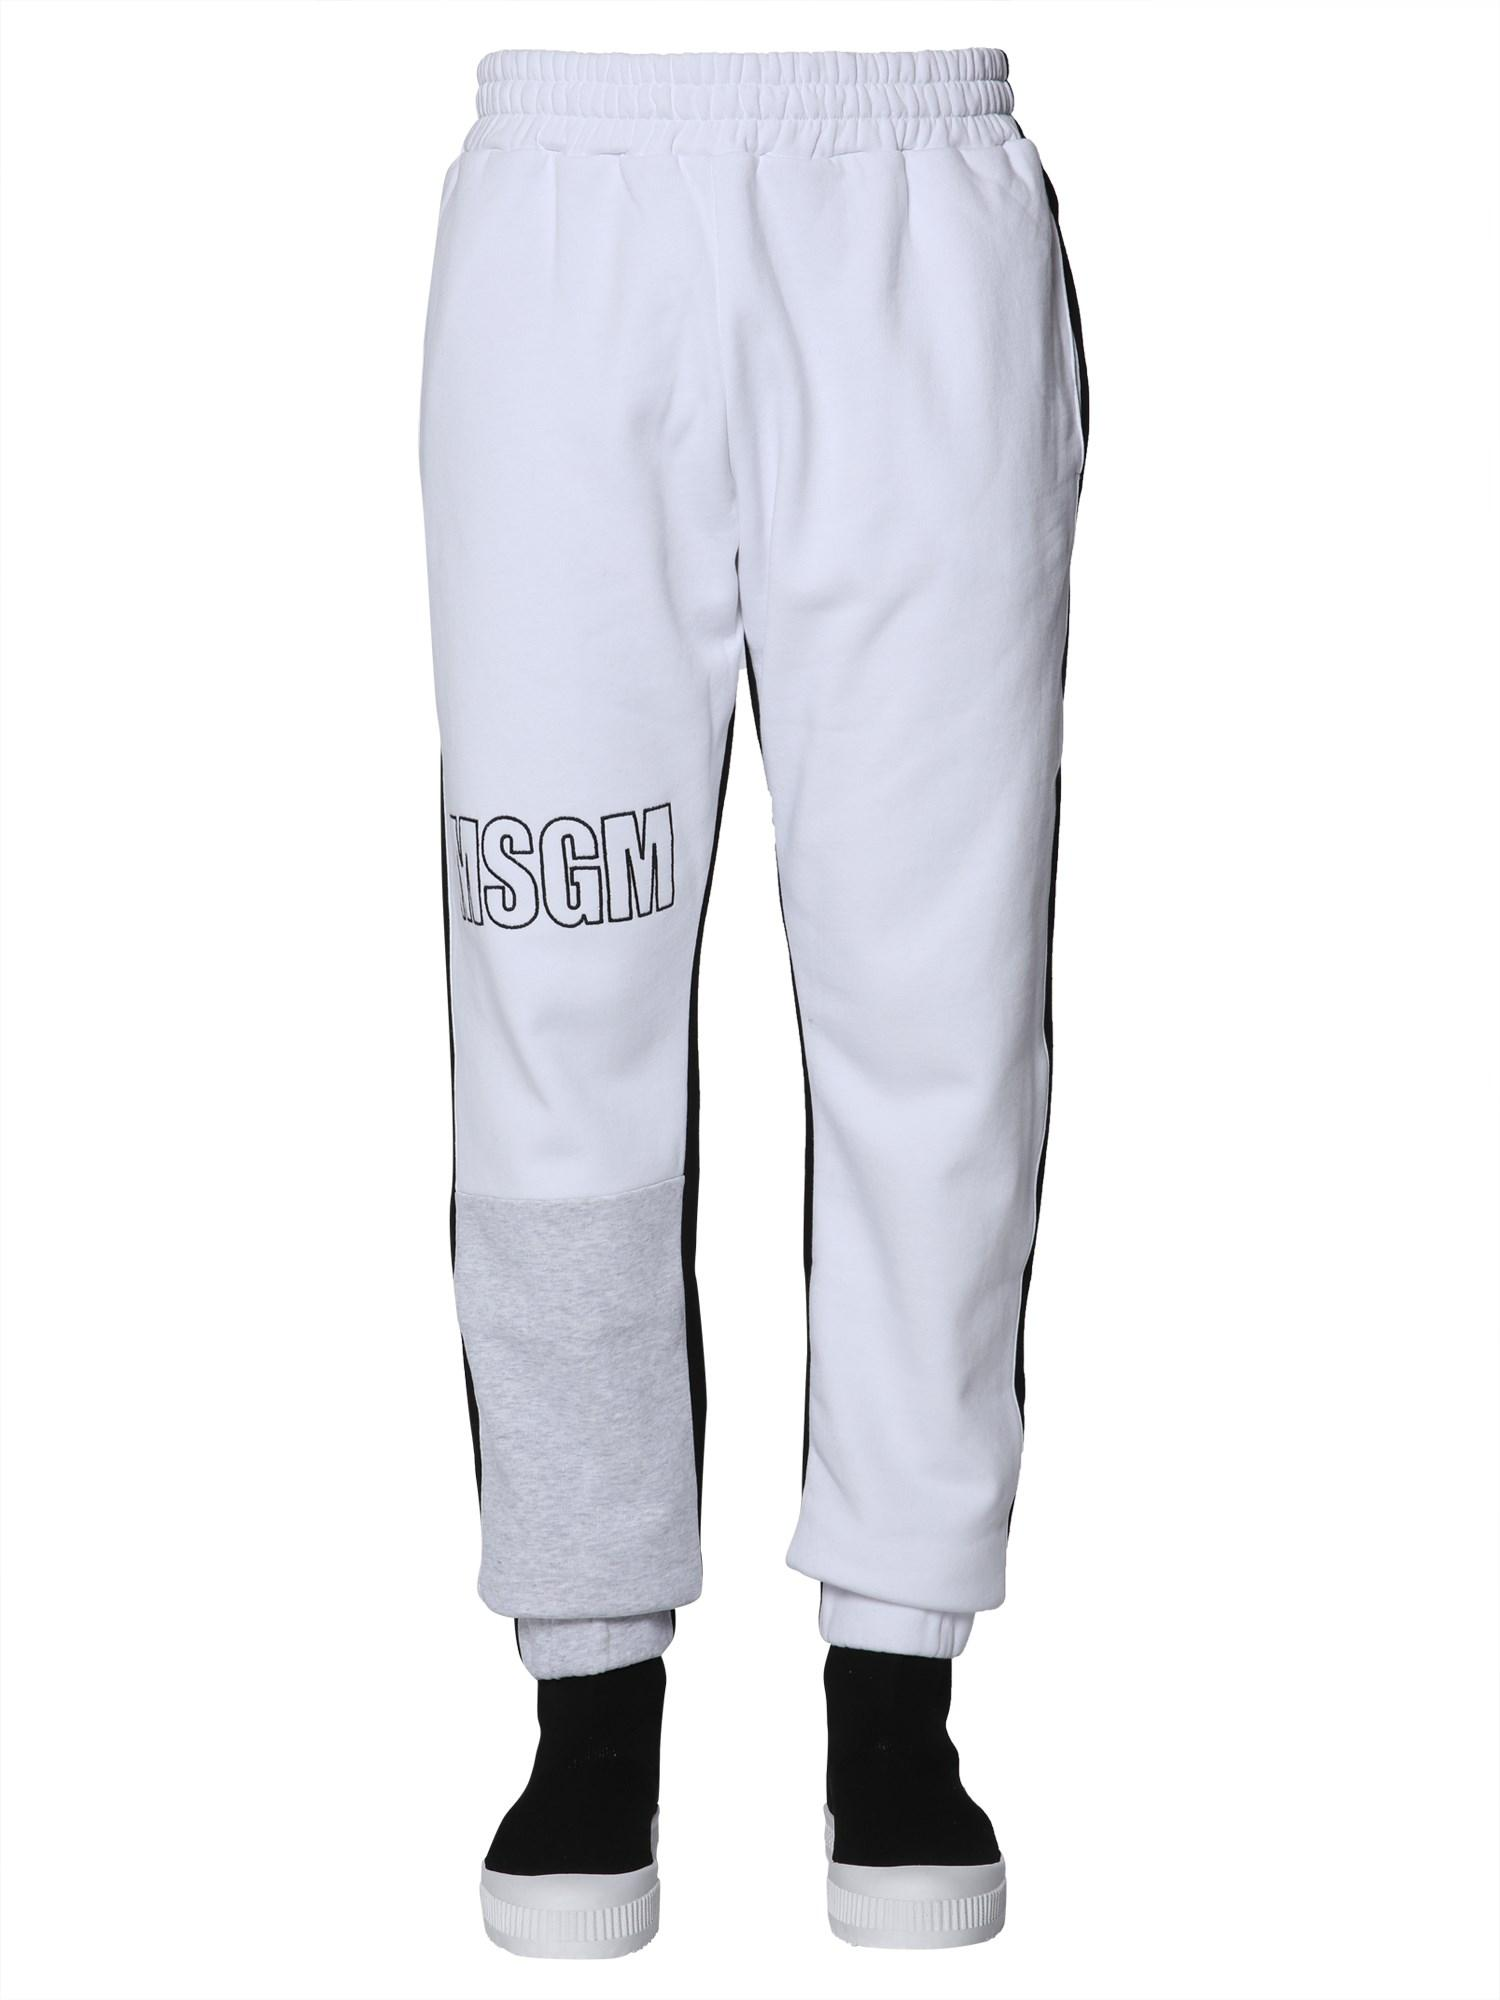 a48933bc12d MSGM Cotton JOGGING Trousers With Logo in Black for Men - Lyst